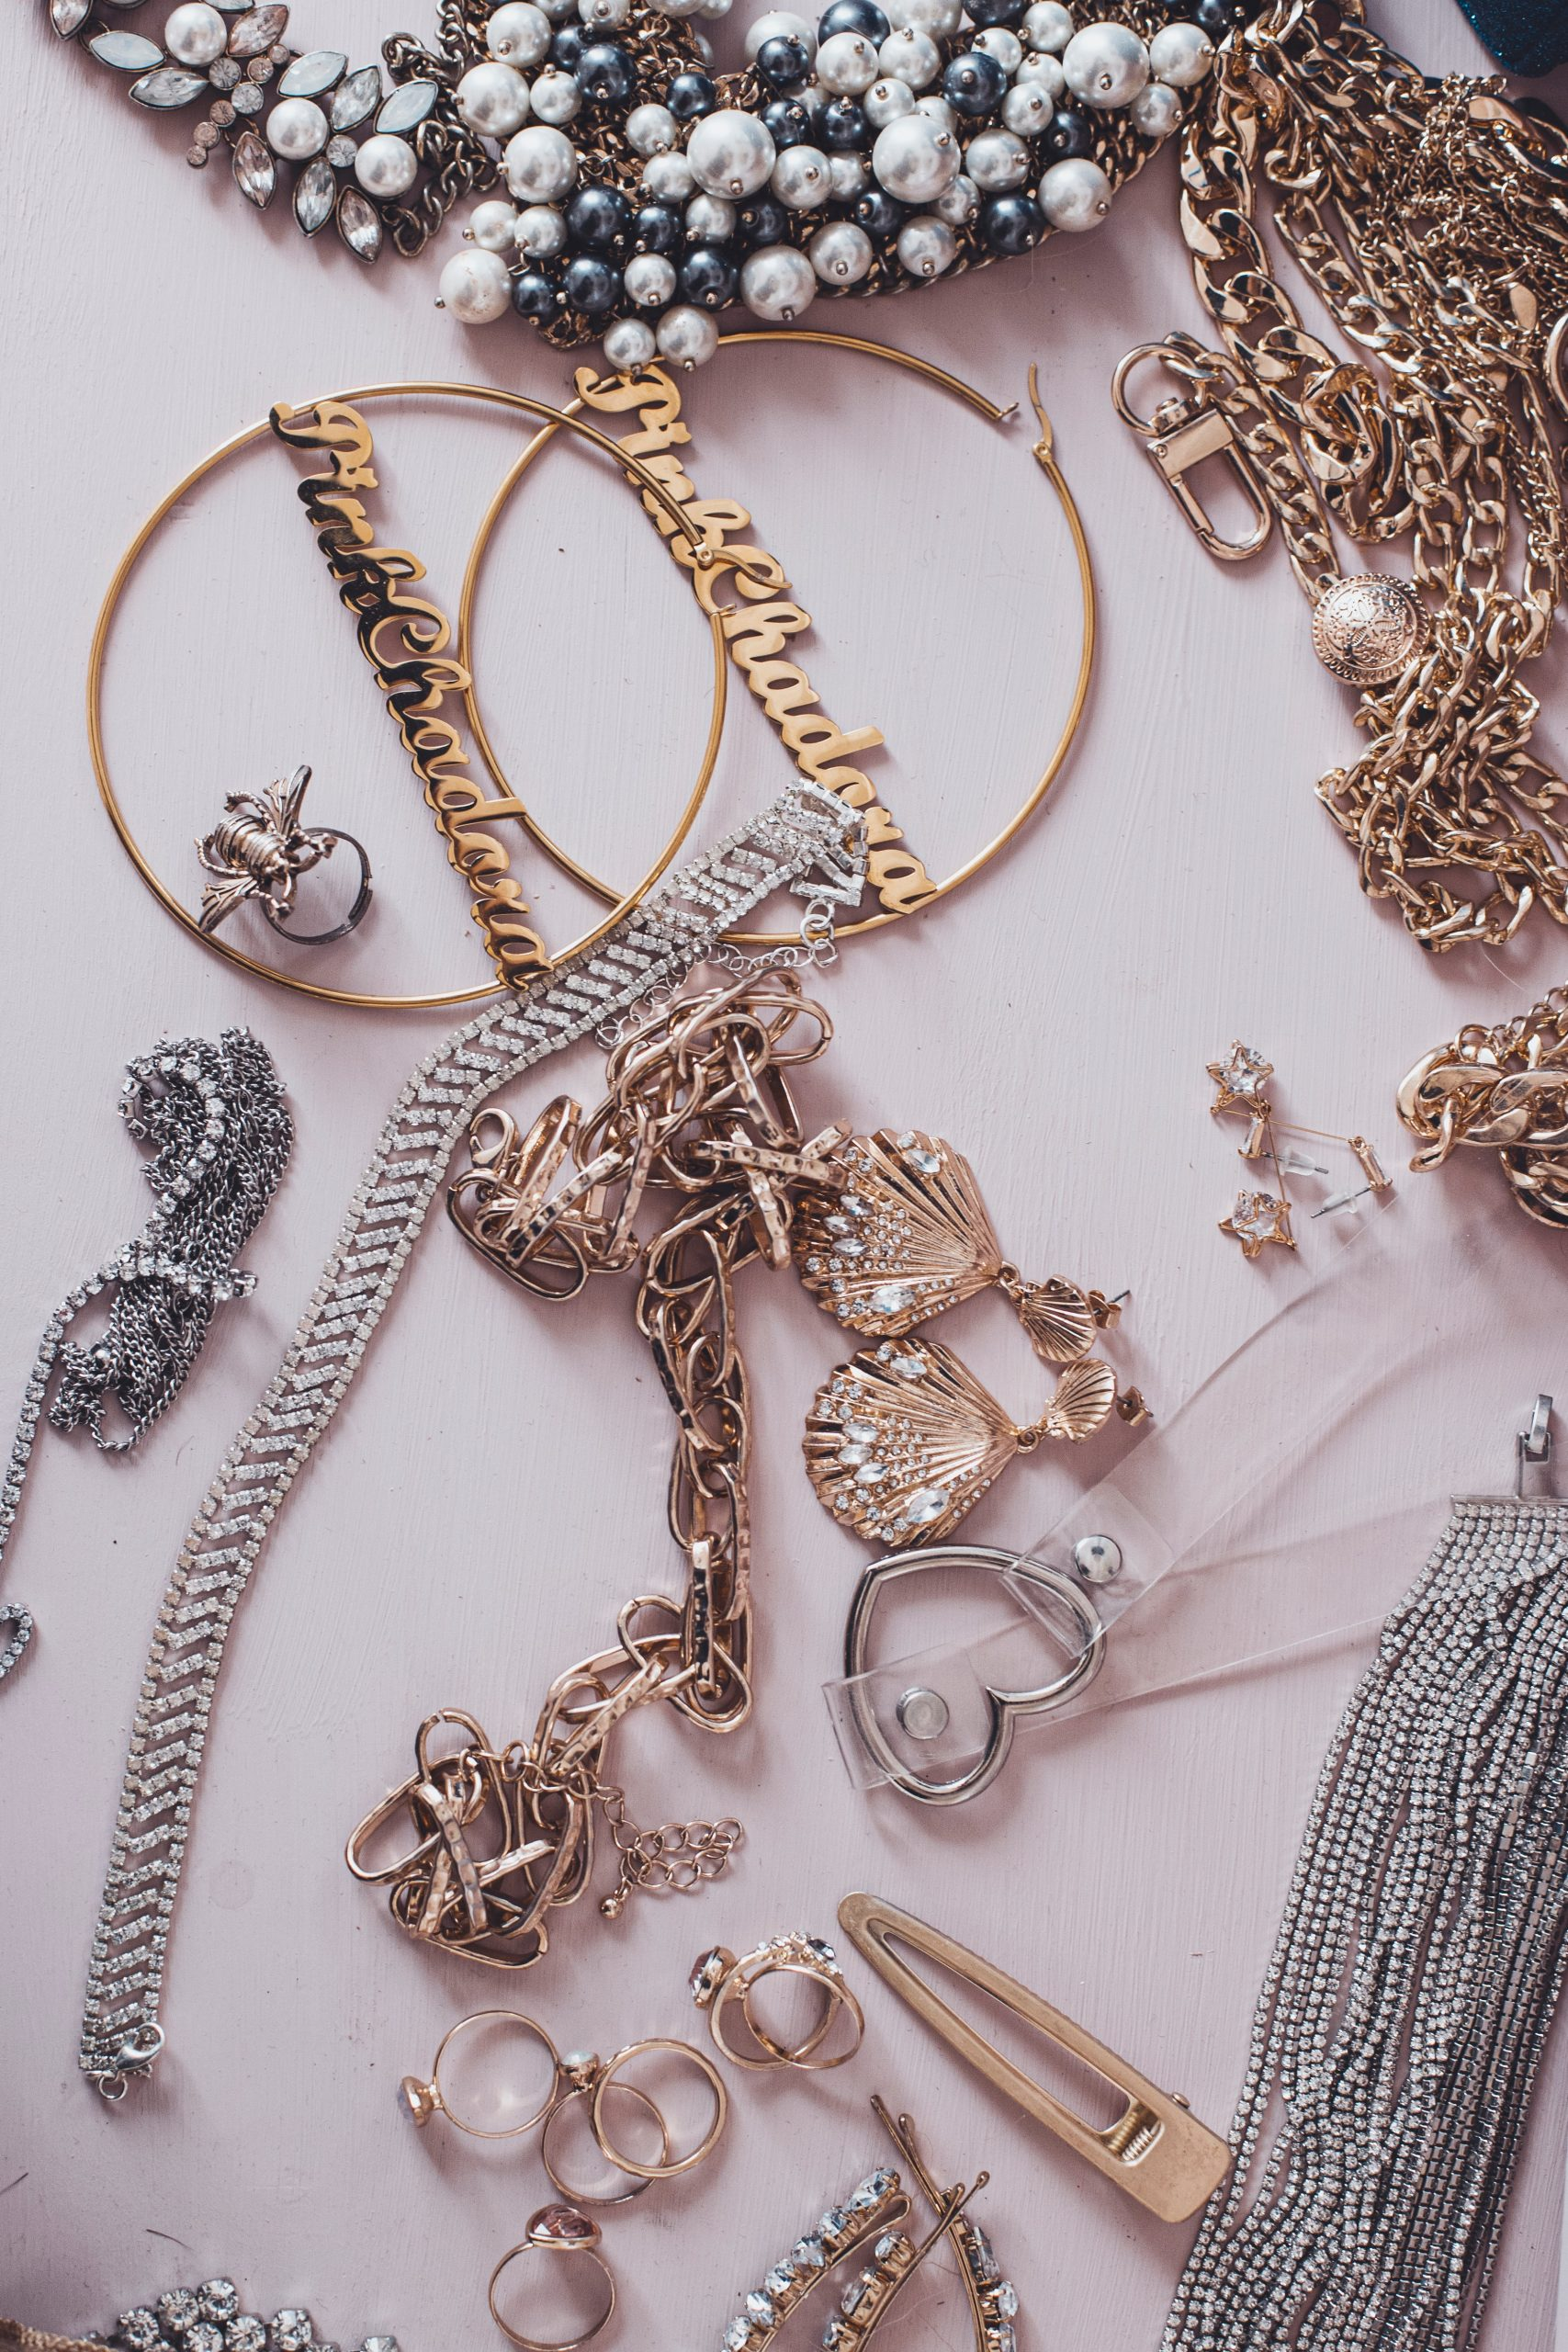 Upcycling Your Old Jewellery